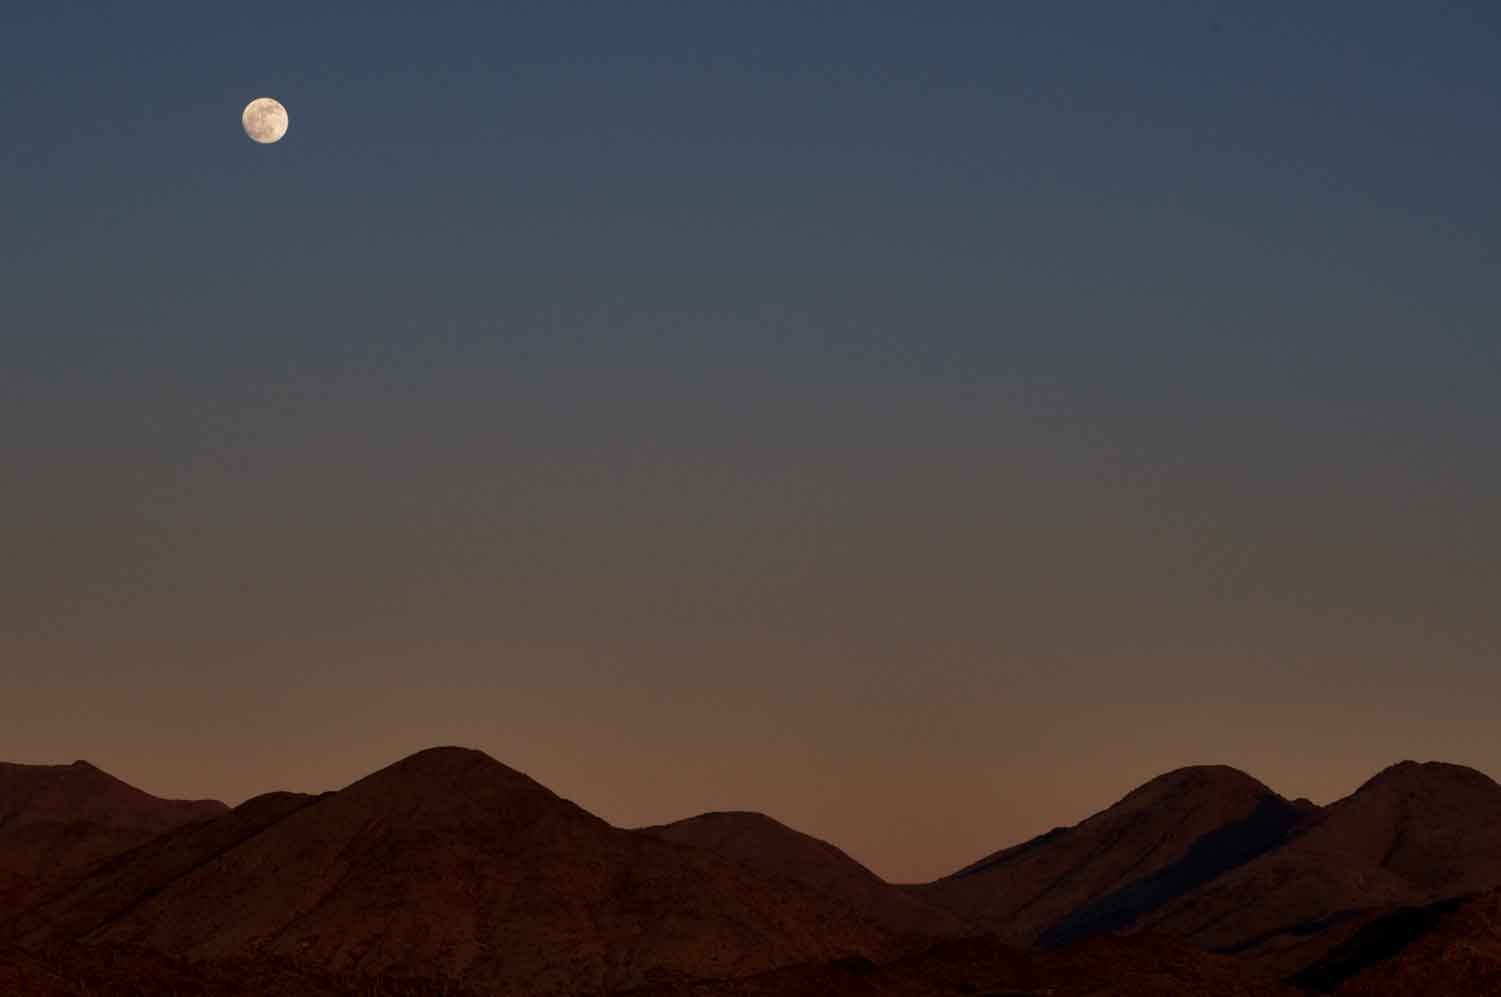 Moonrise near New River, Arizona